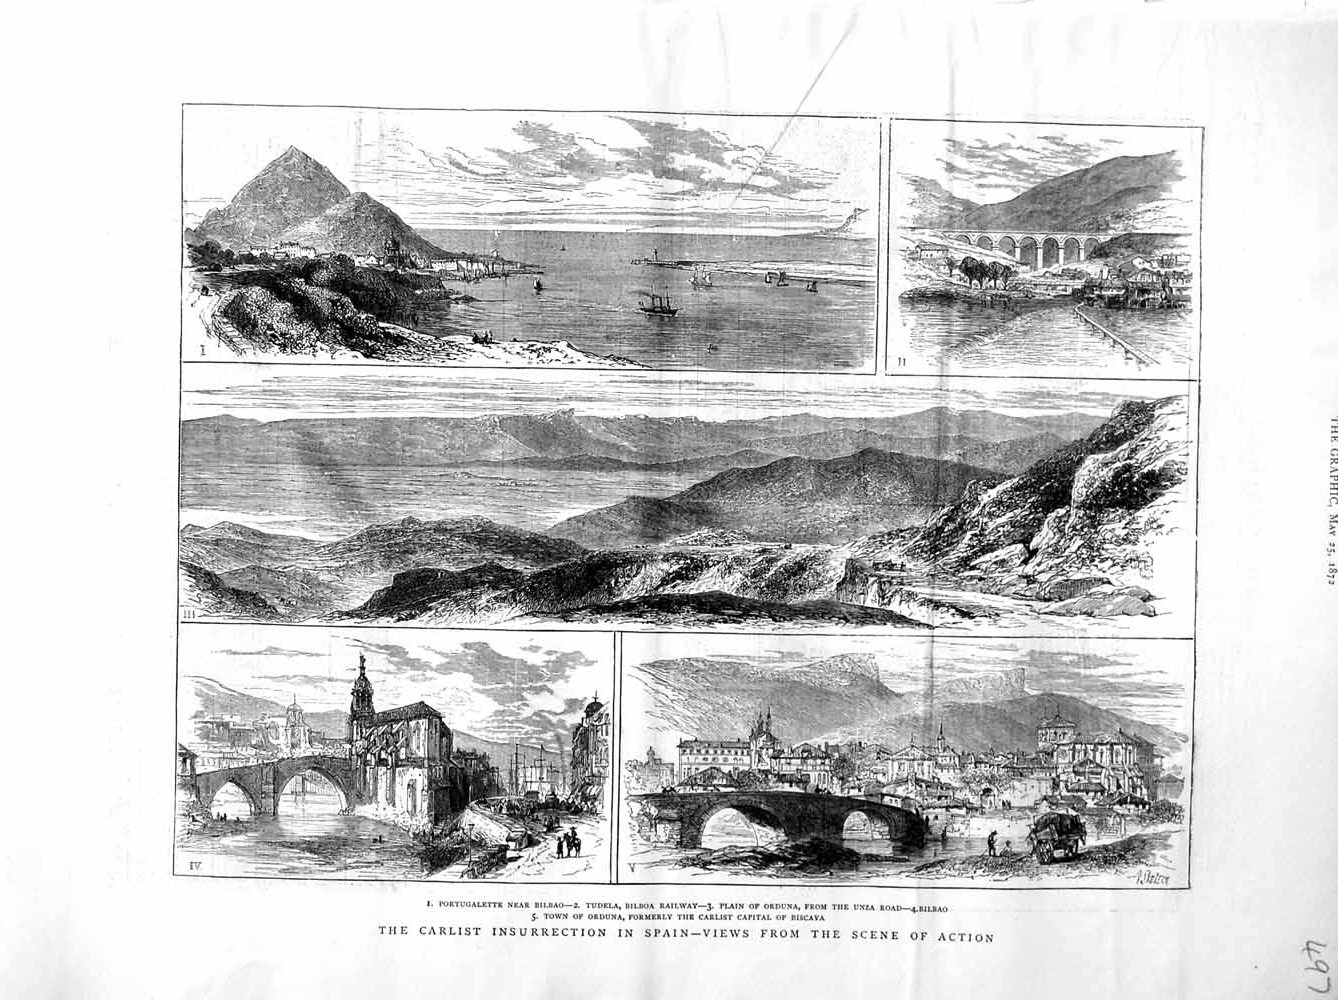 Print 1872 Carlist War Spain Tudela Bilbao Railway Orduna  Old Original